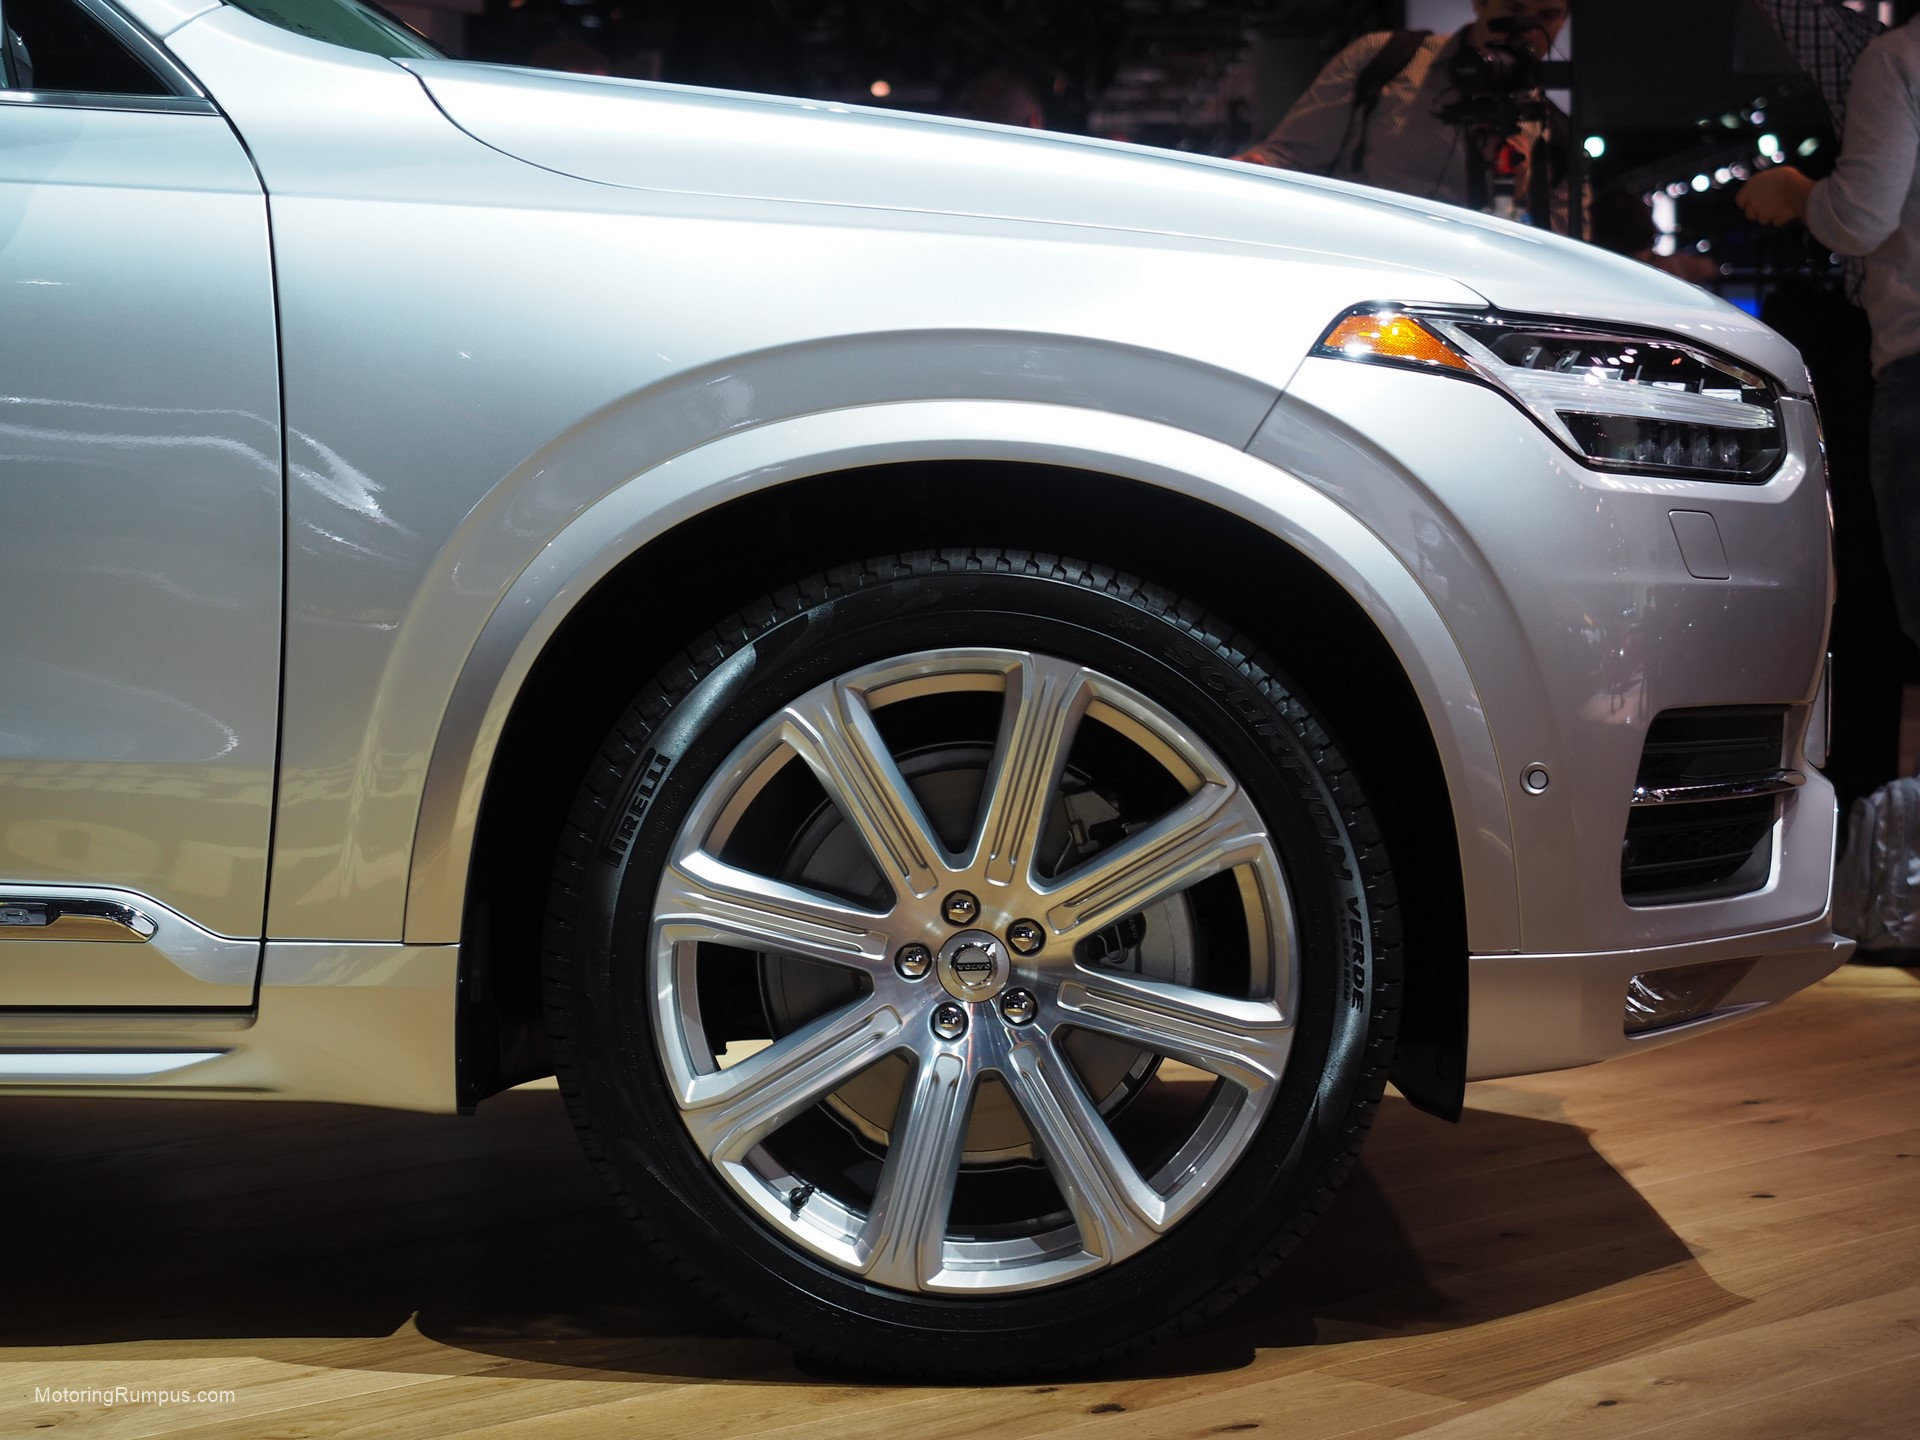 2016 Naias Volvo Xc90 21 Inch Wheel Motoring Rumpus